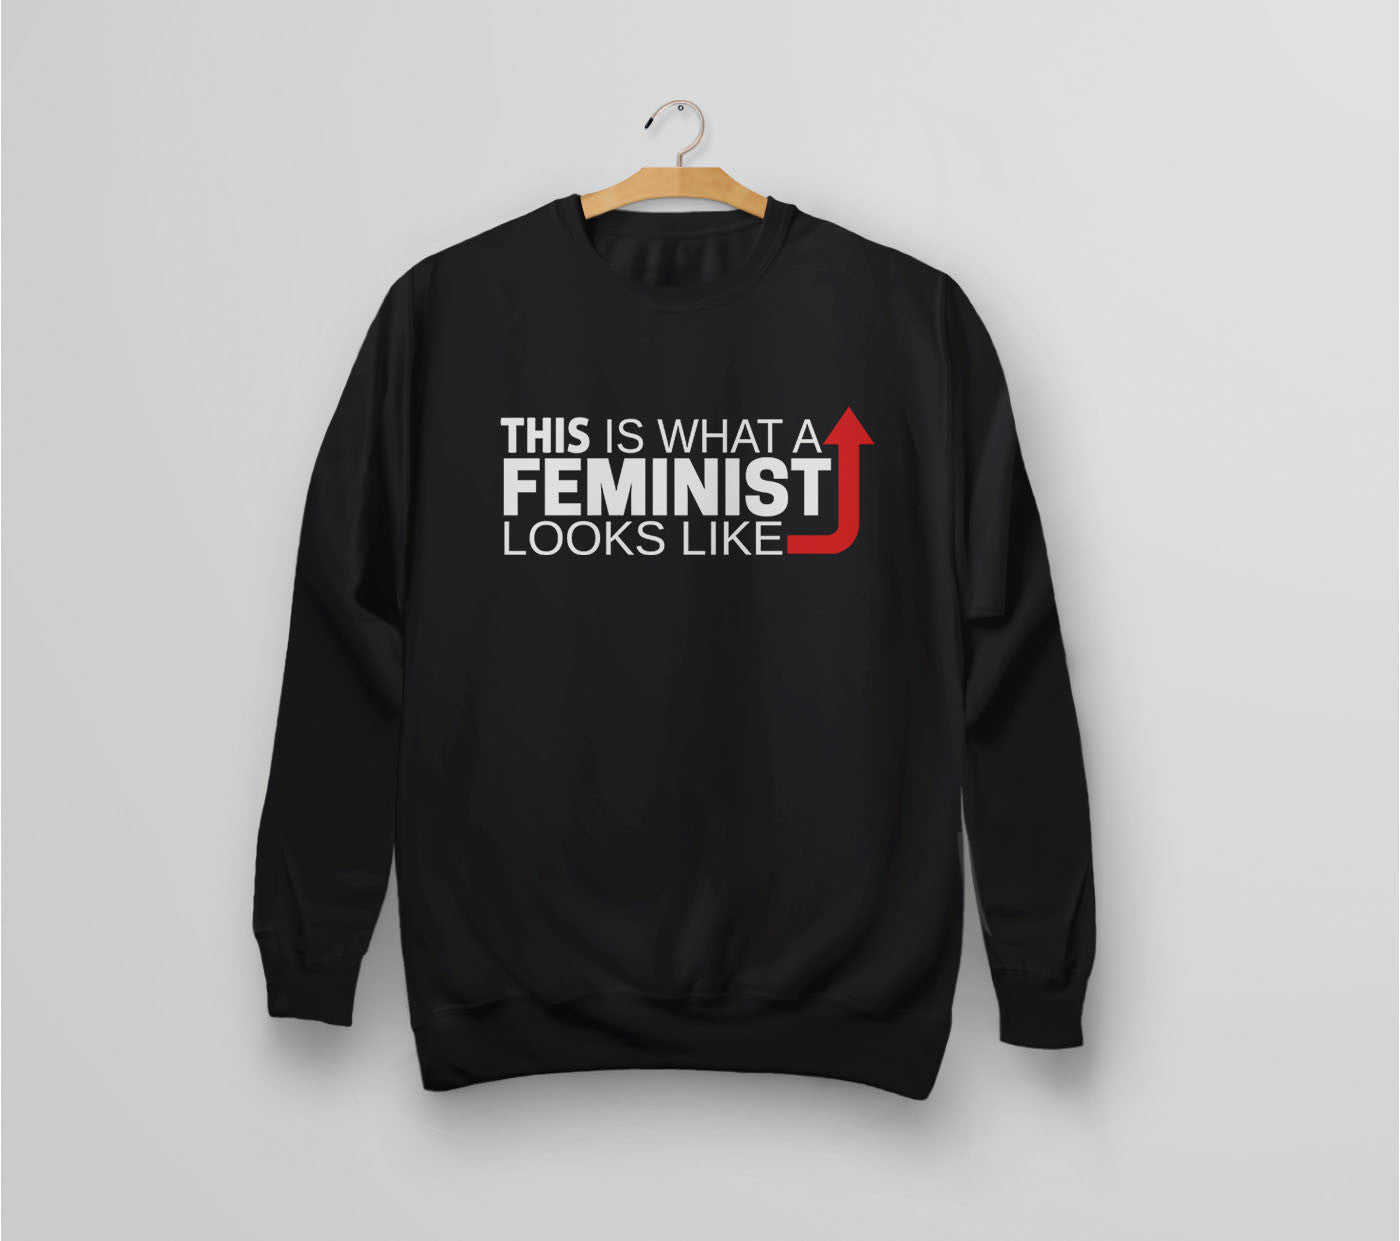 This is what a feminist looks like black sweatshirt